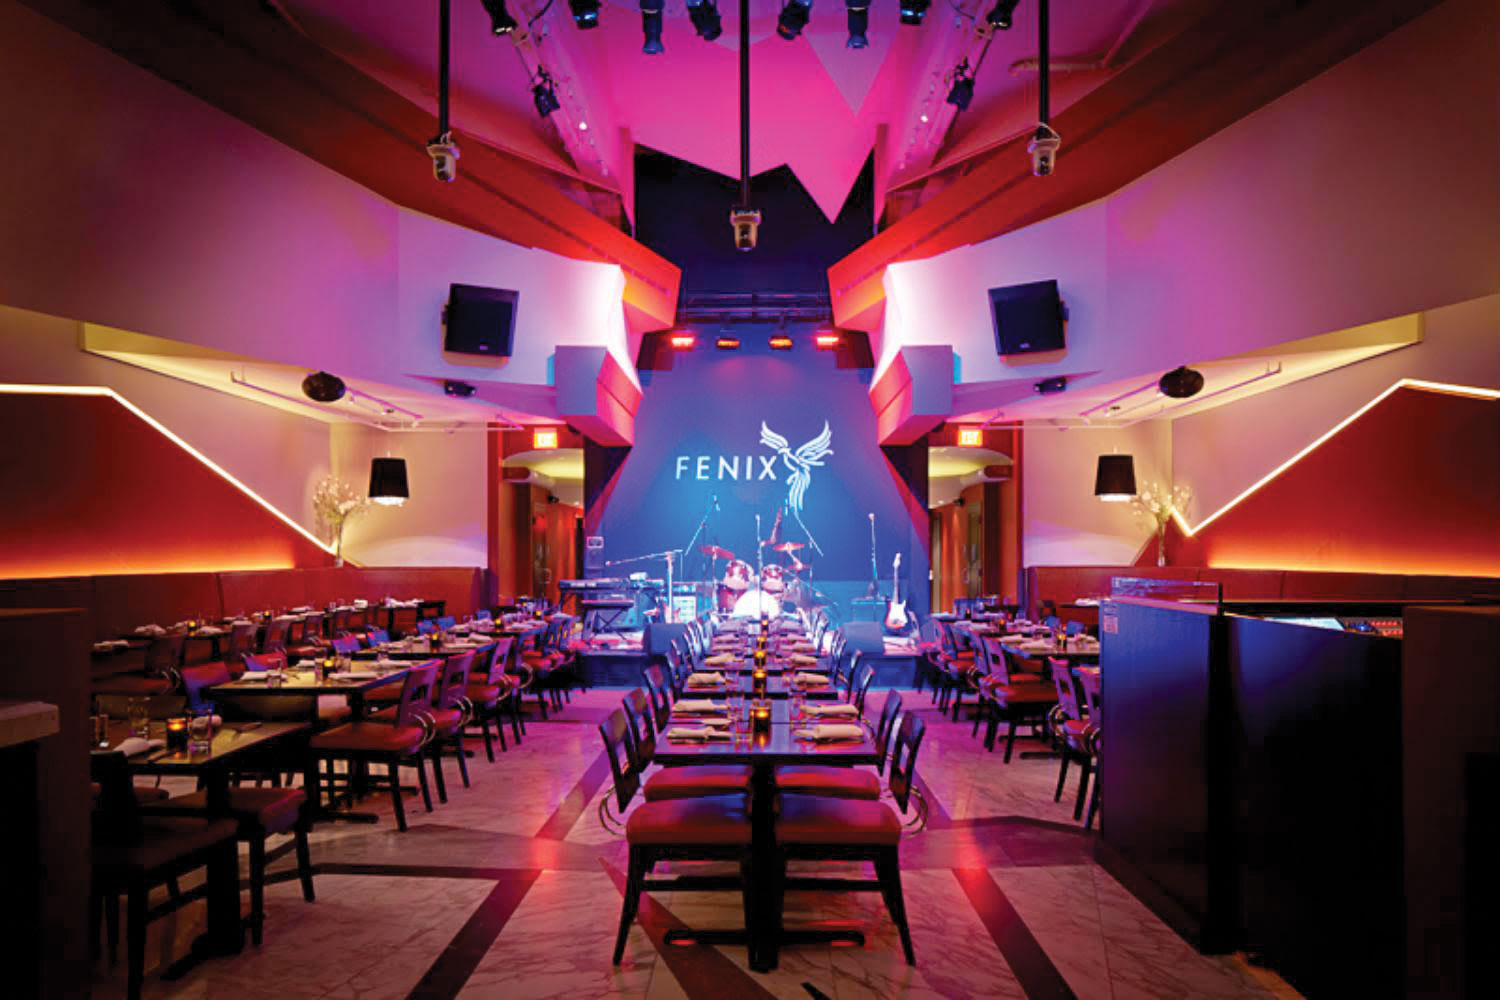 Fenix Club in San Rafael CA has introduced a template for a new form of creative and social interaction, onsite and online.